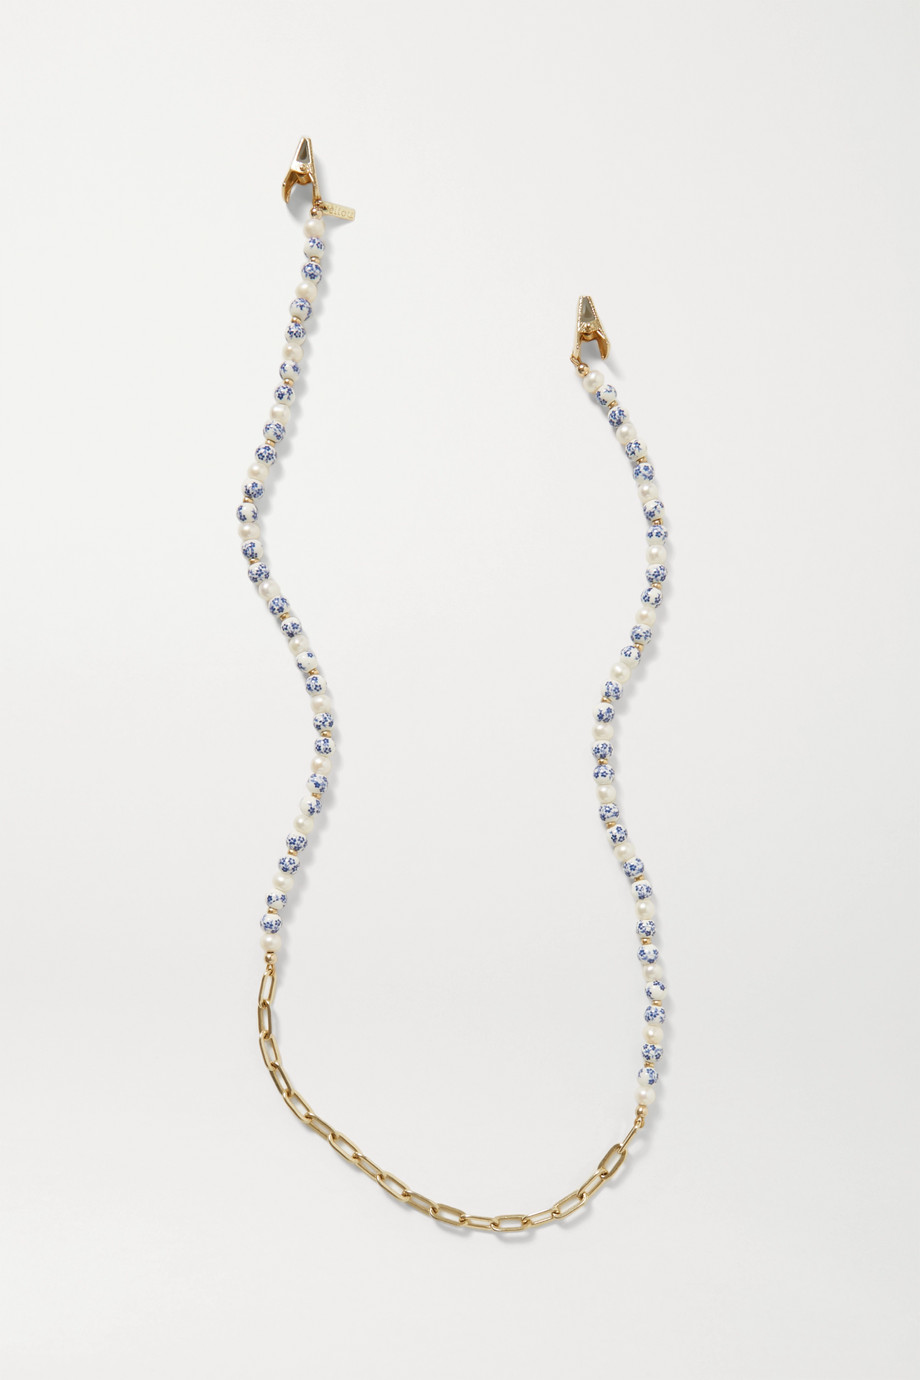 ÉLIOU Arther gold-plated, pearl and bead sunglasses chain